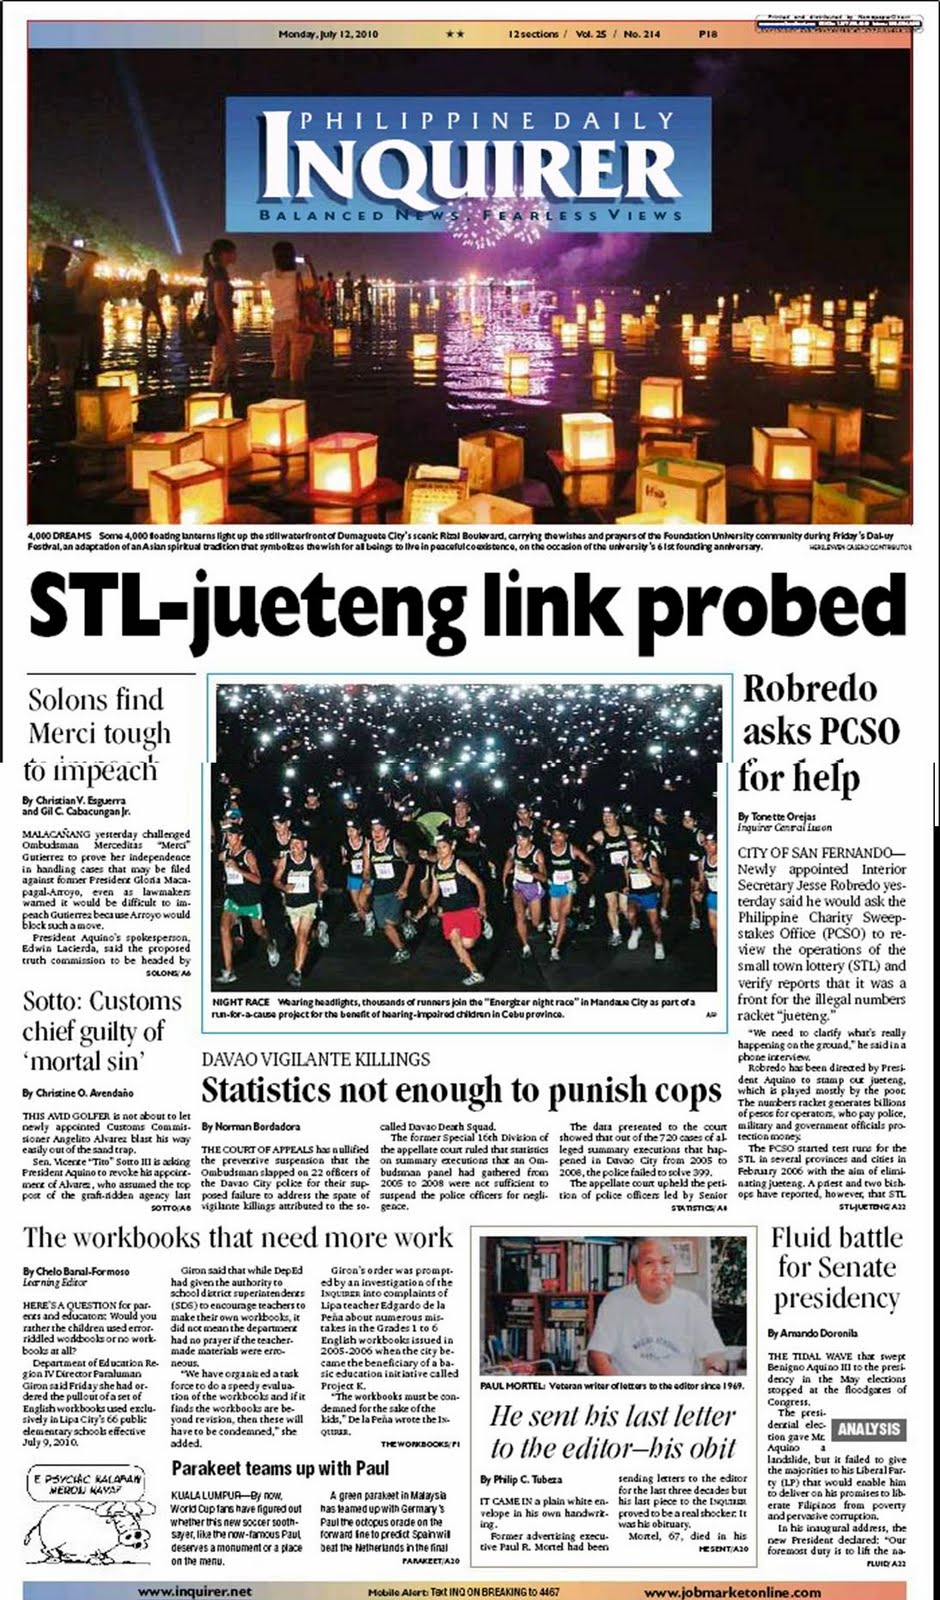 The Inquirer Front Page: July 2010